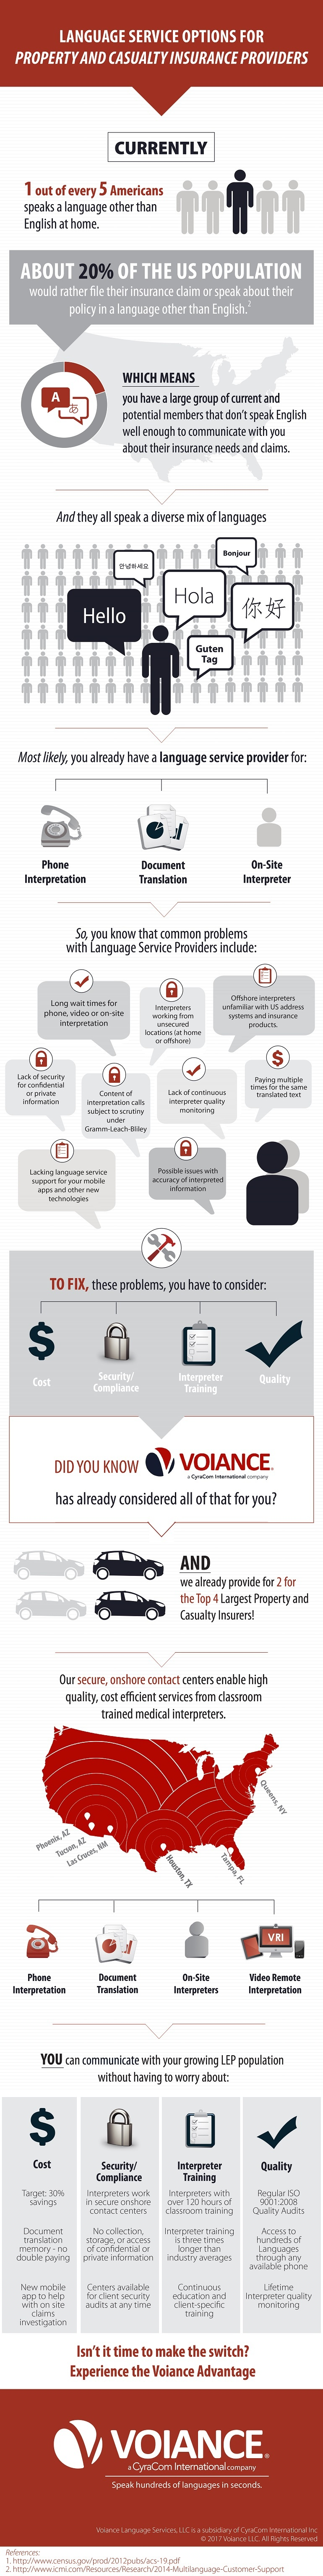 P&C Insurance_Infographic v6-01 770px